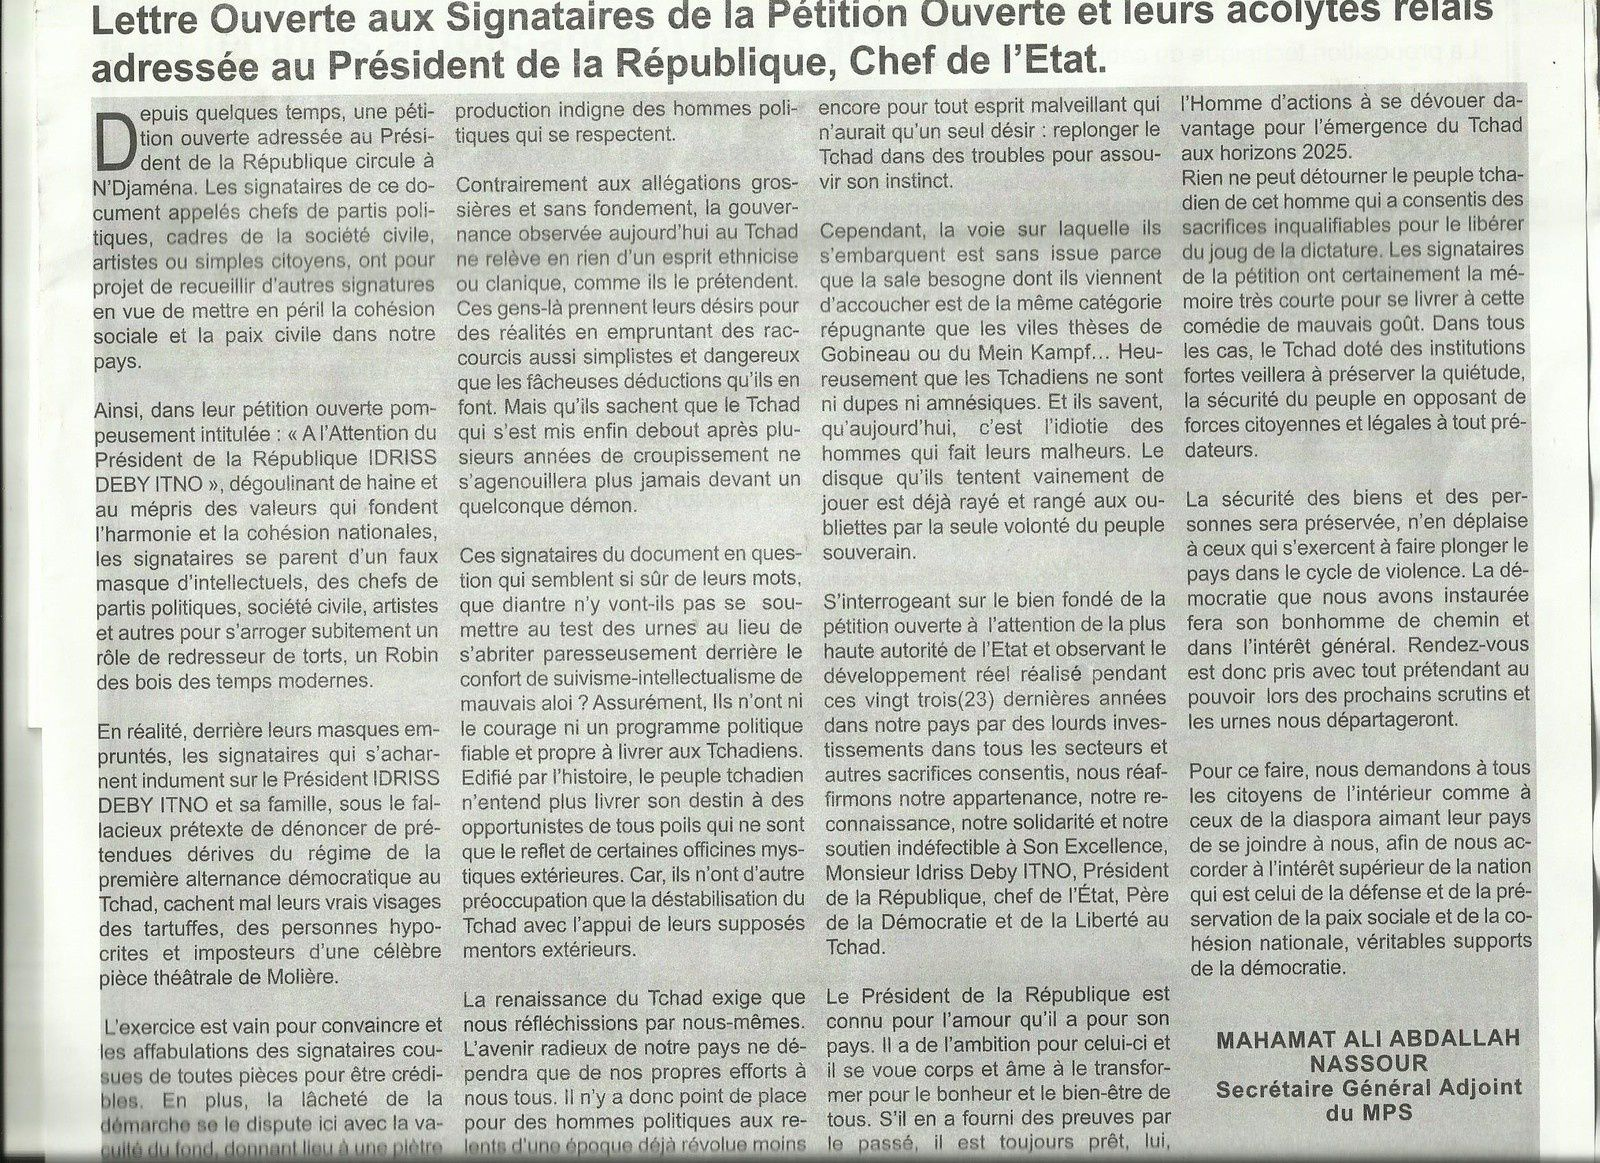 Pétition au Tchad: réaction de Mahamat Ali Abdallah